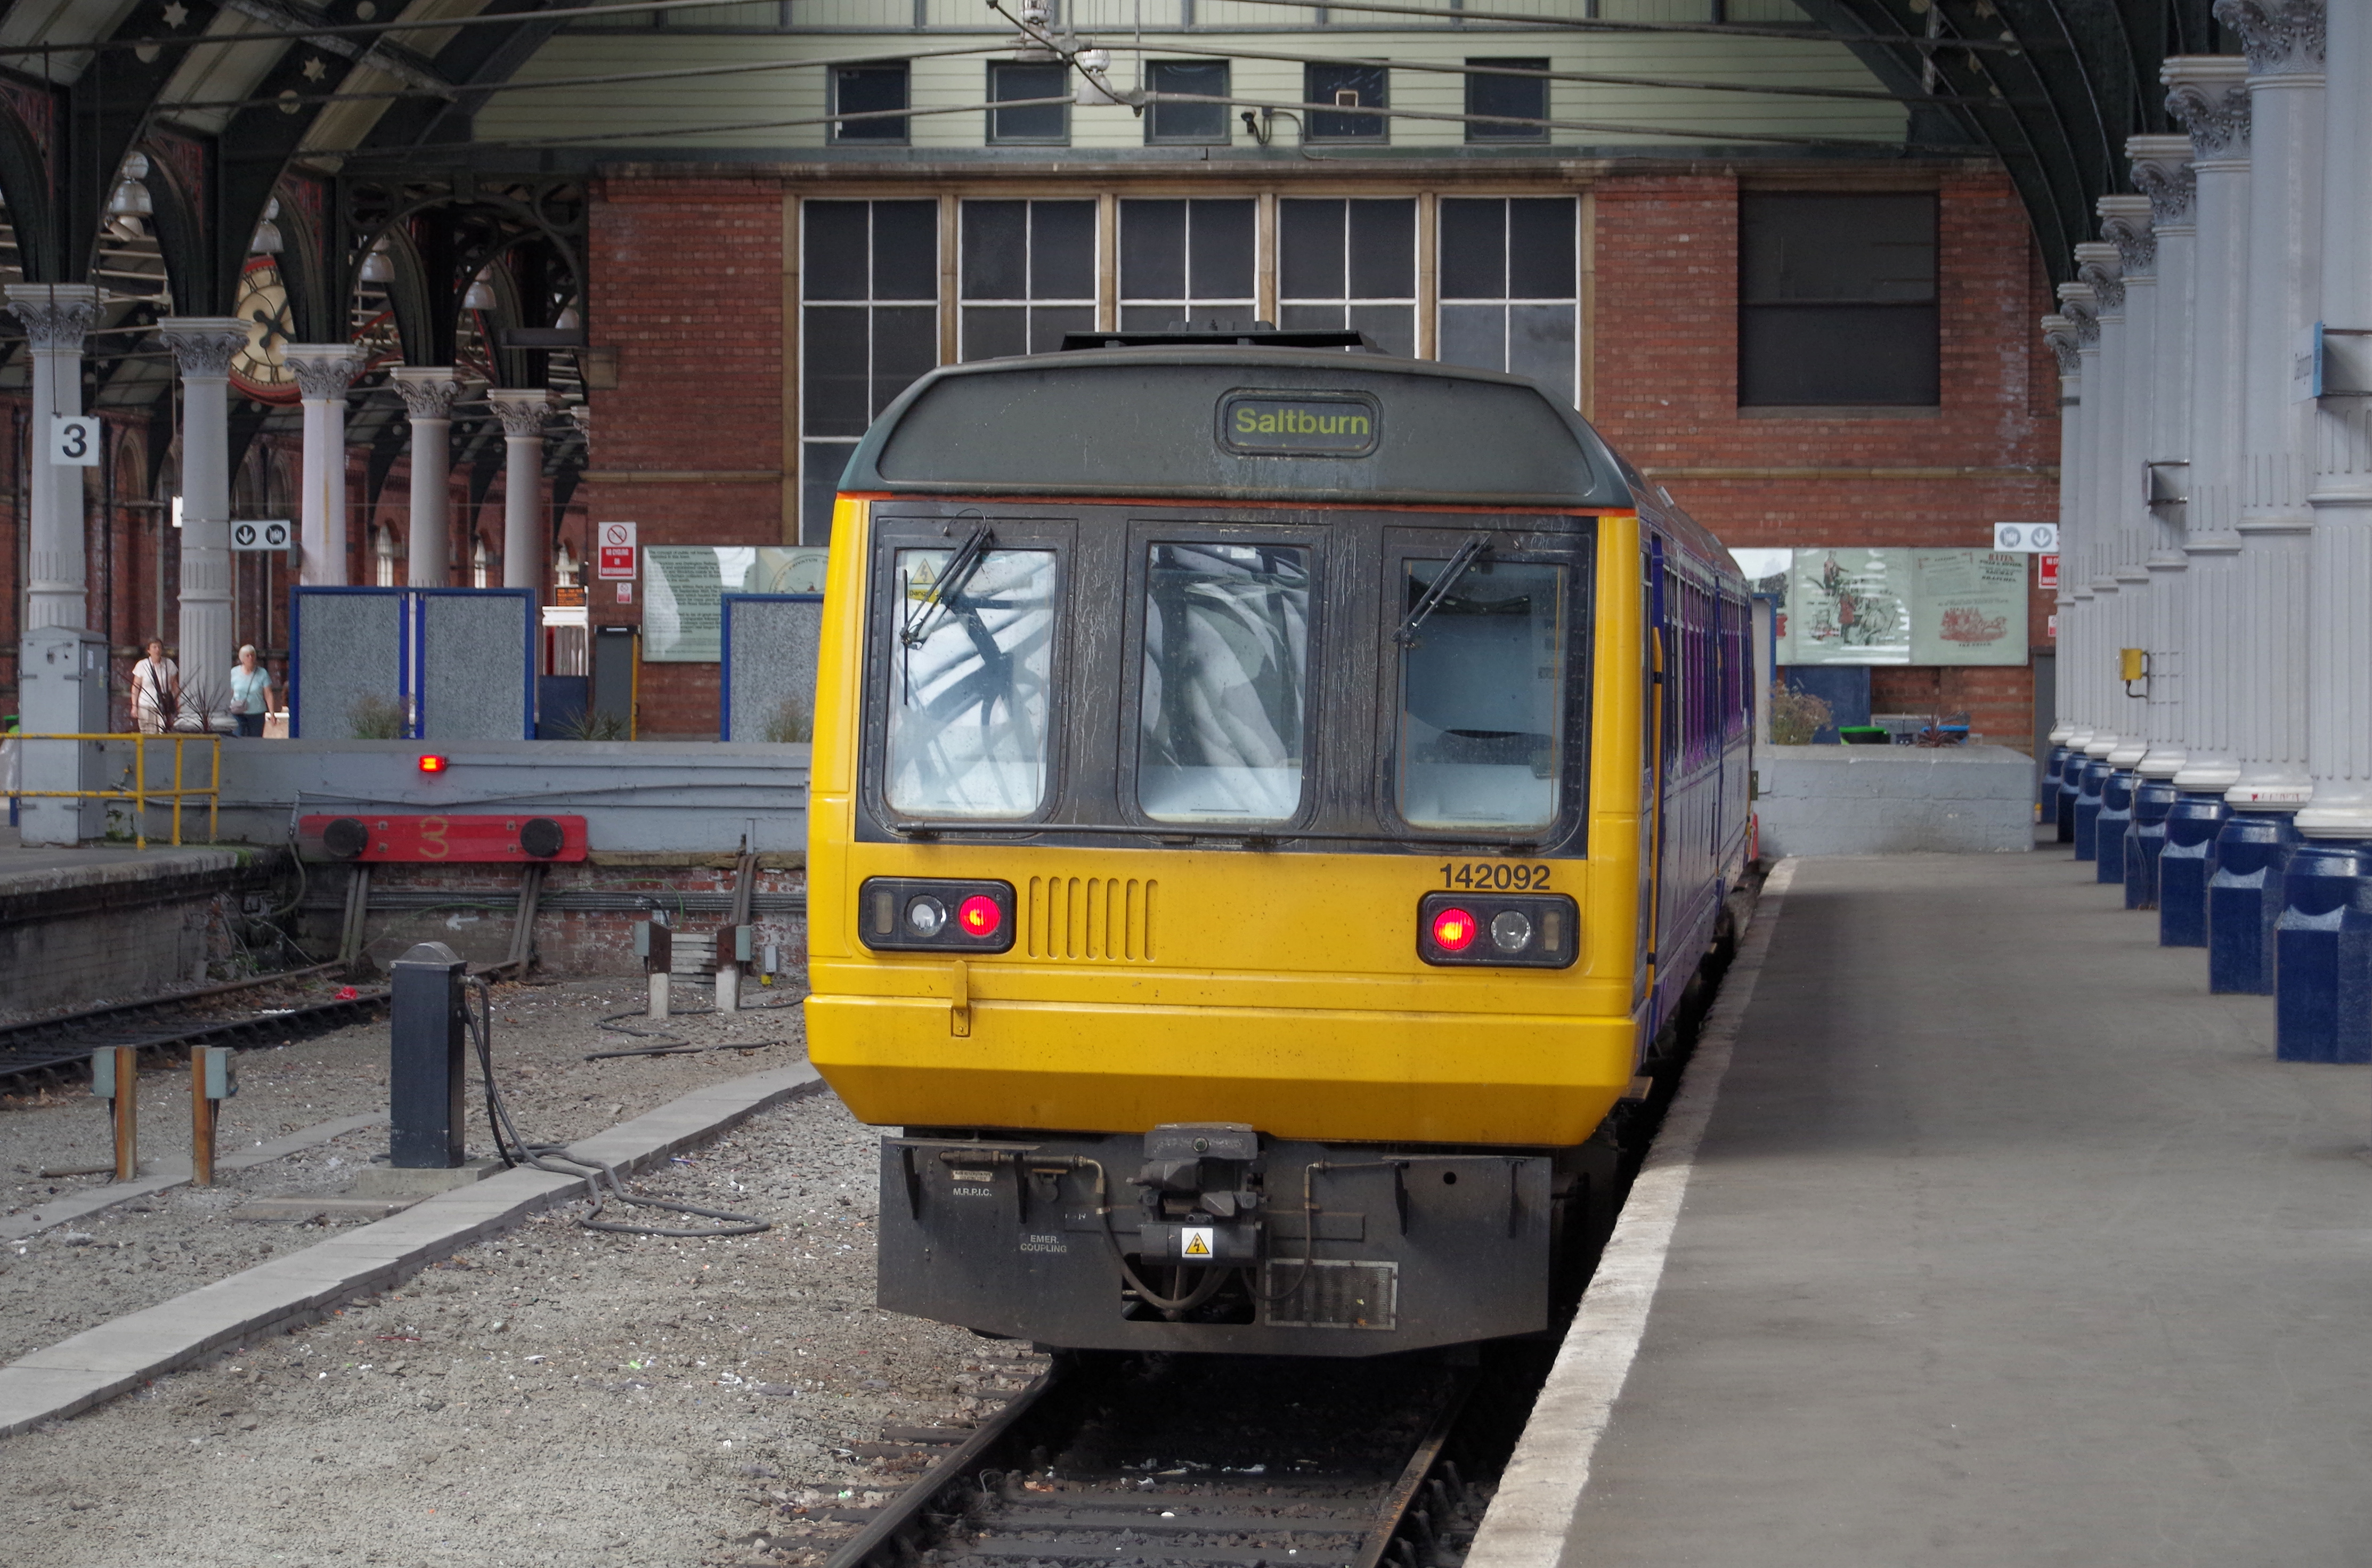 Darlington railway station MMB 21 142092